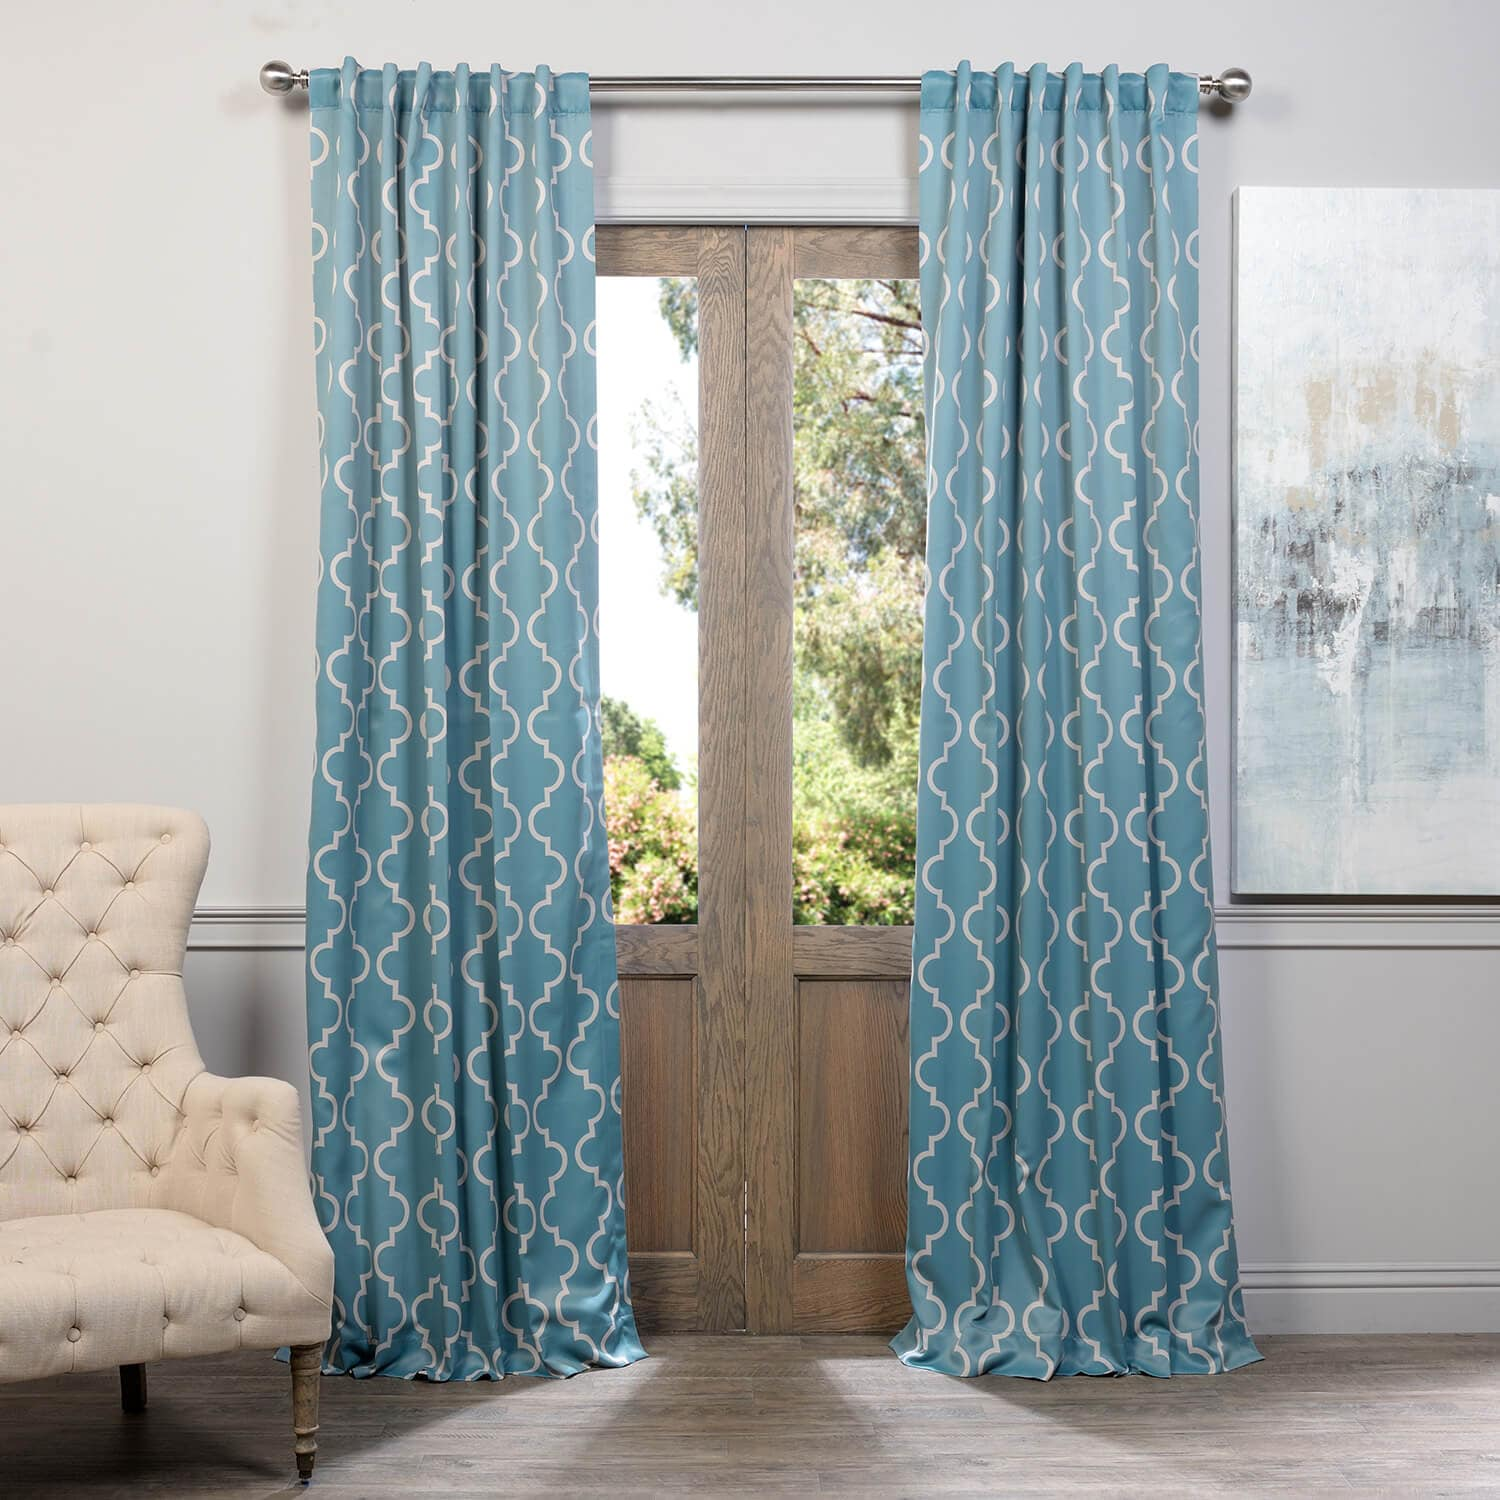 Teal Blackout Curtains Seville Dusty Teal Blackout Curtain